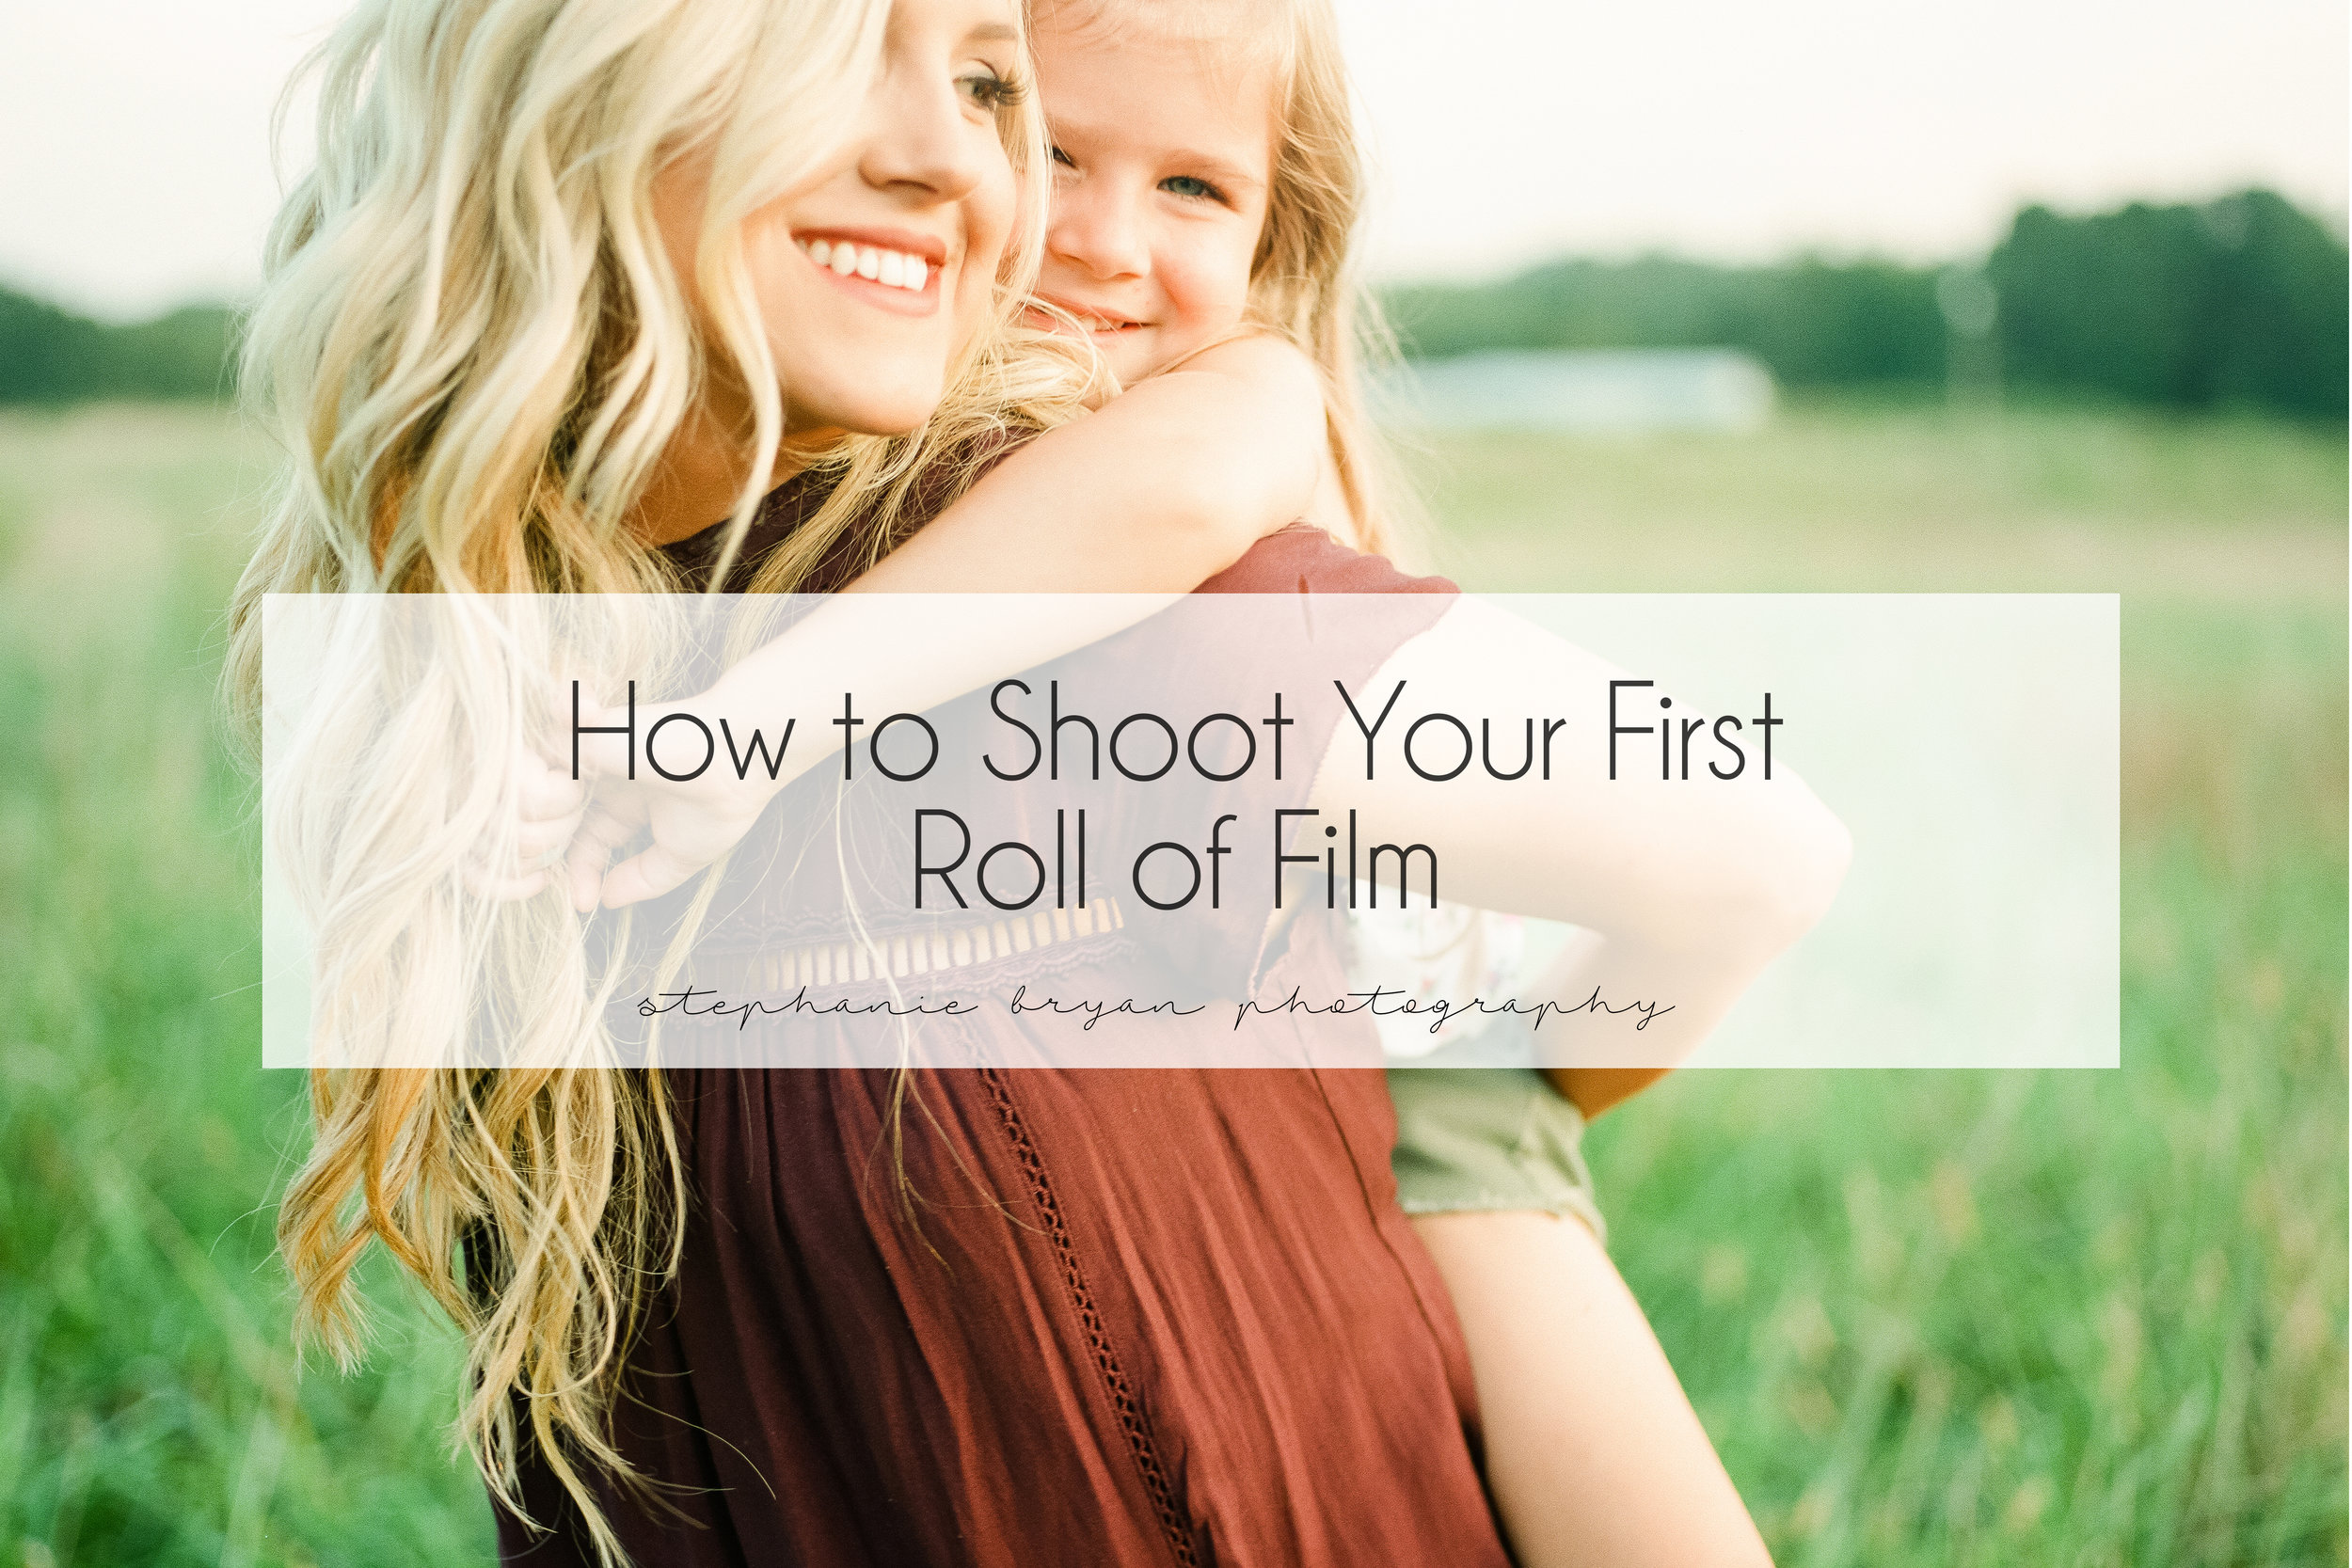 how-to-shoot-your-first-roll-of-film-film-camera-analogue-photography-tutorial.jpg